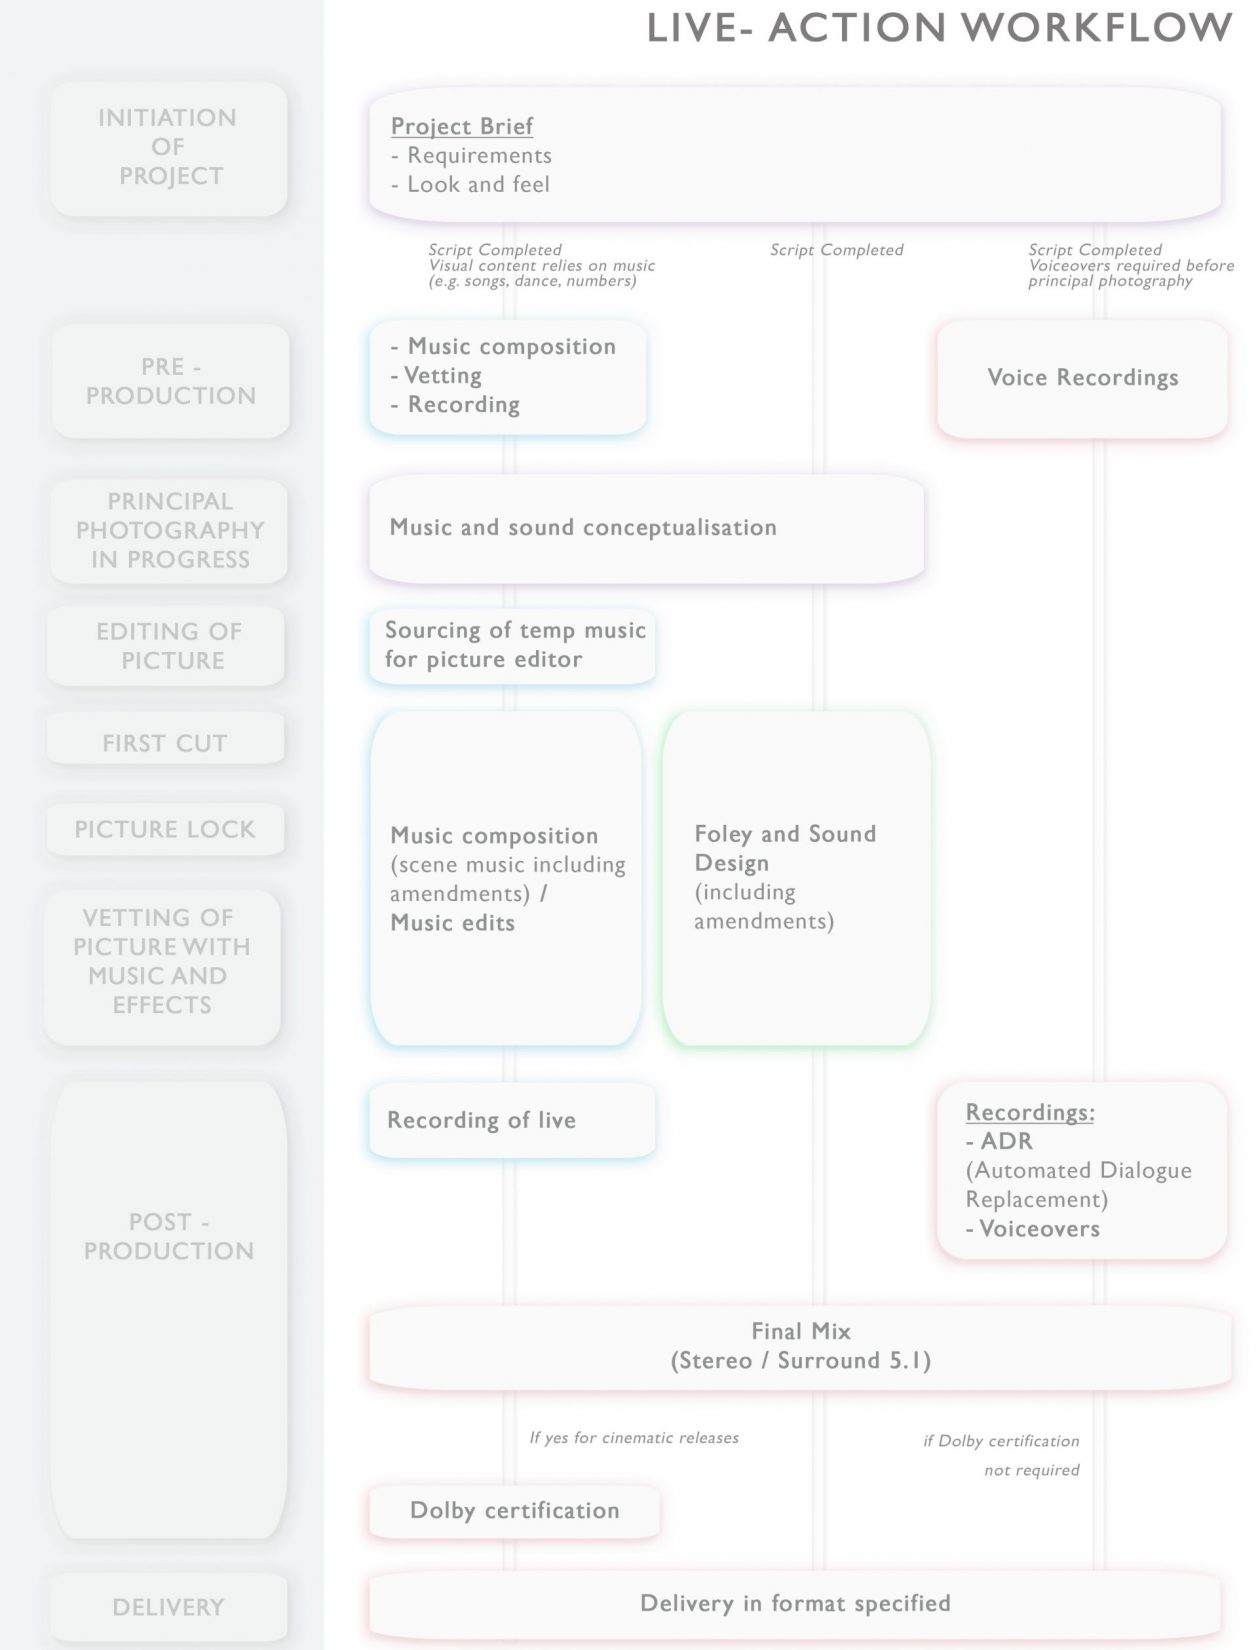 Live-action Workflow